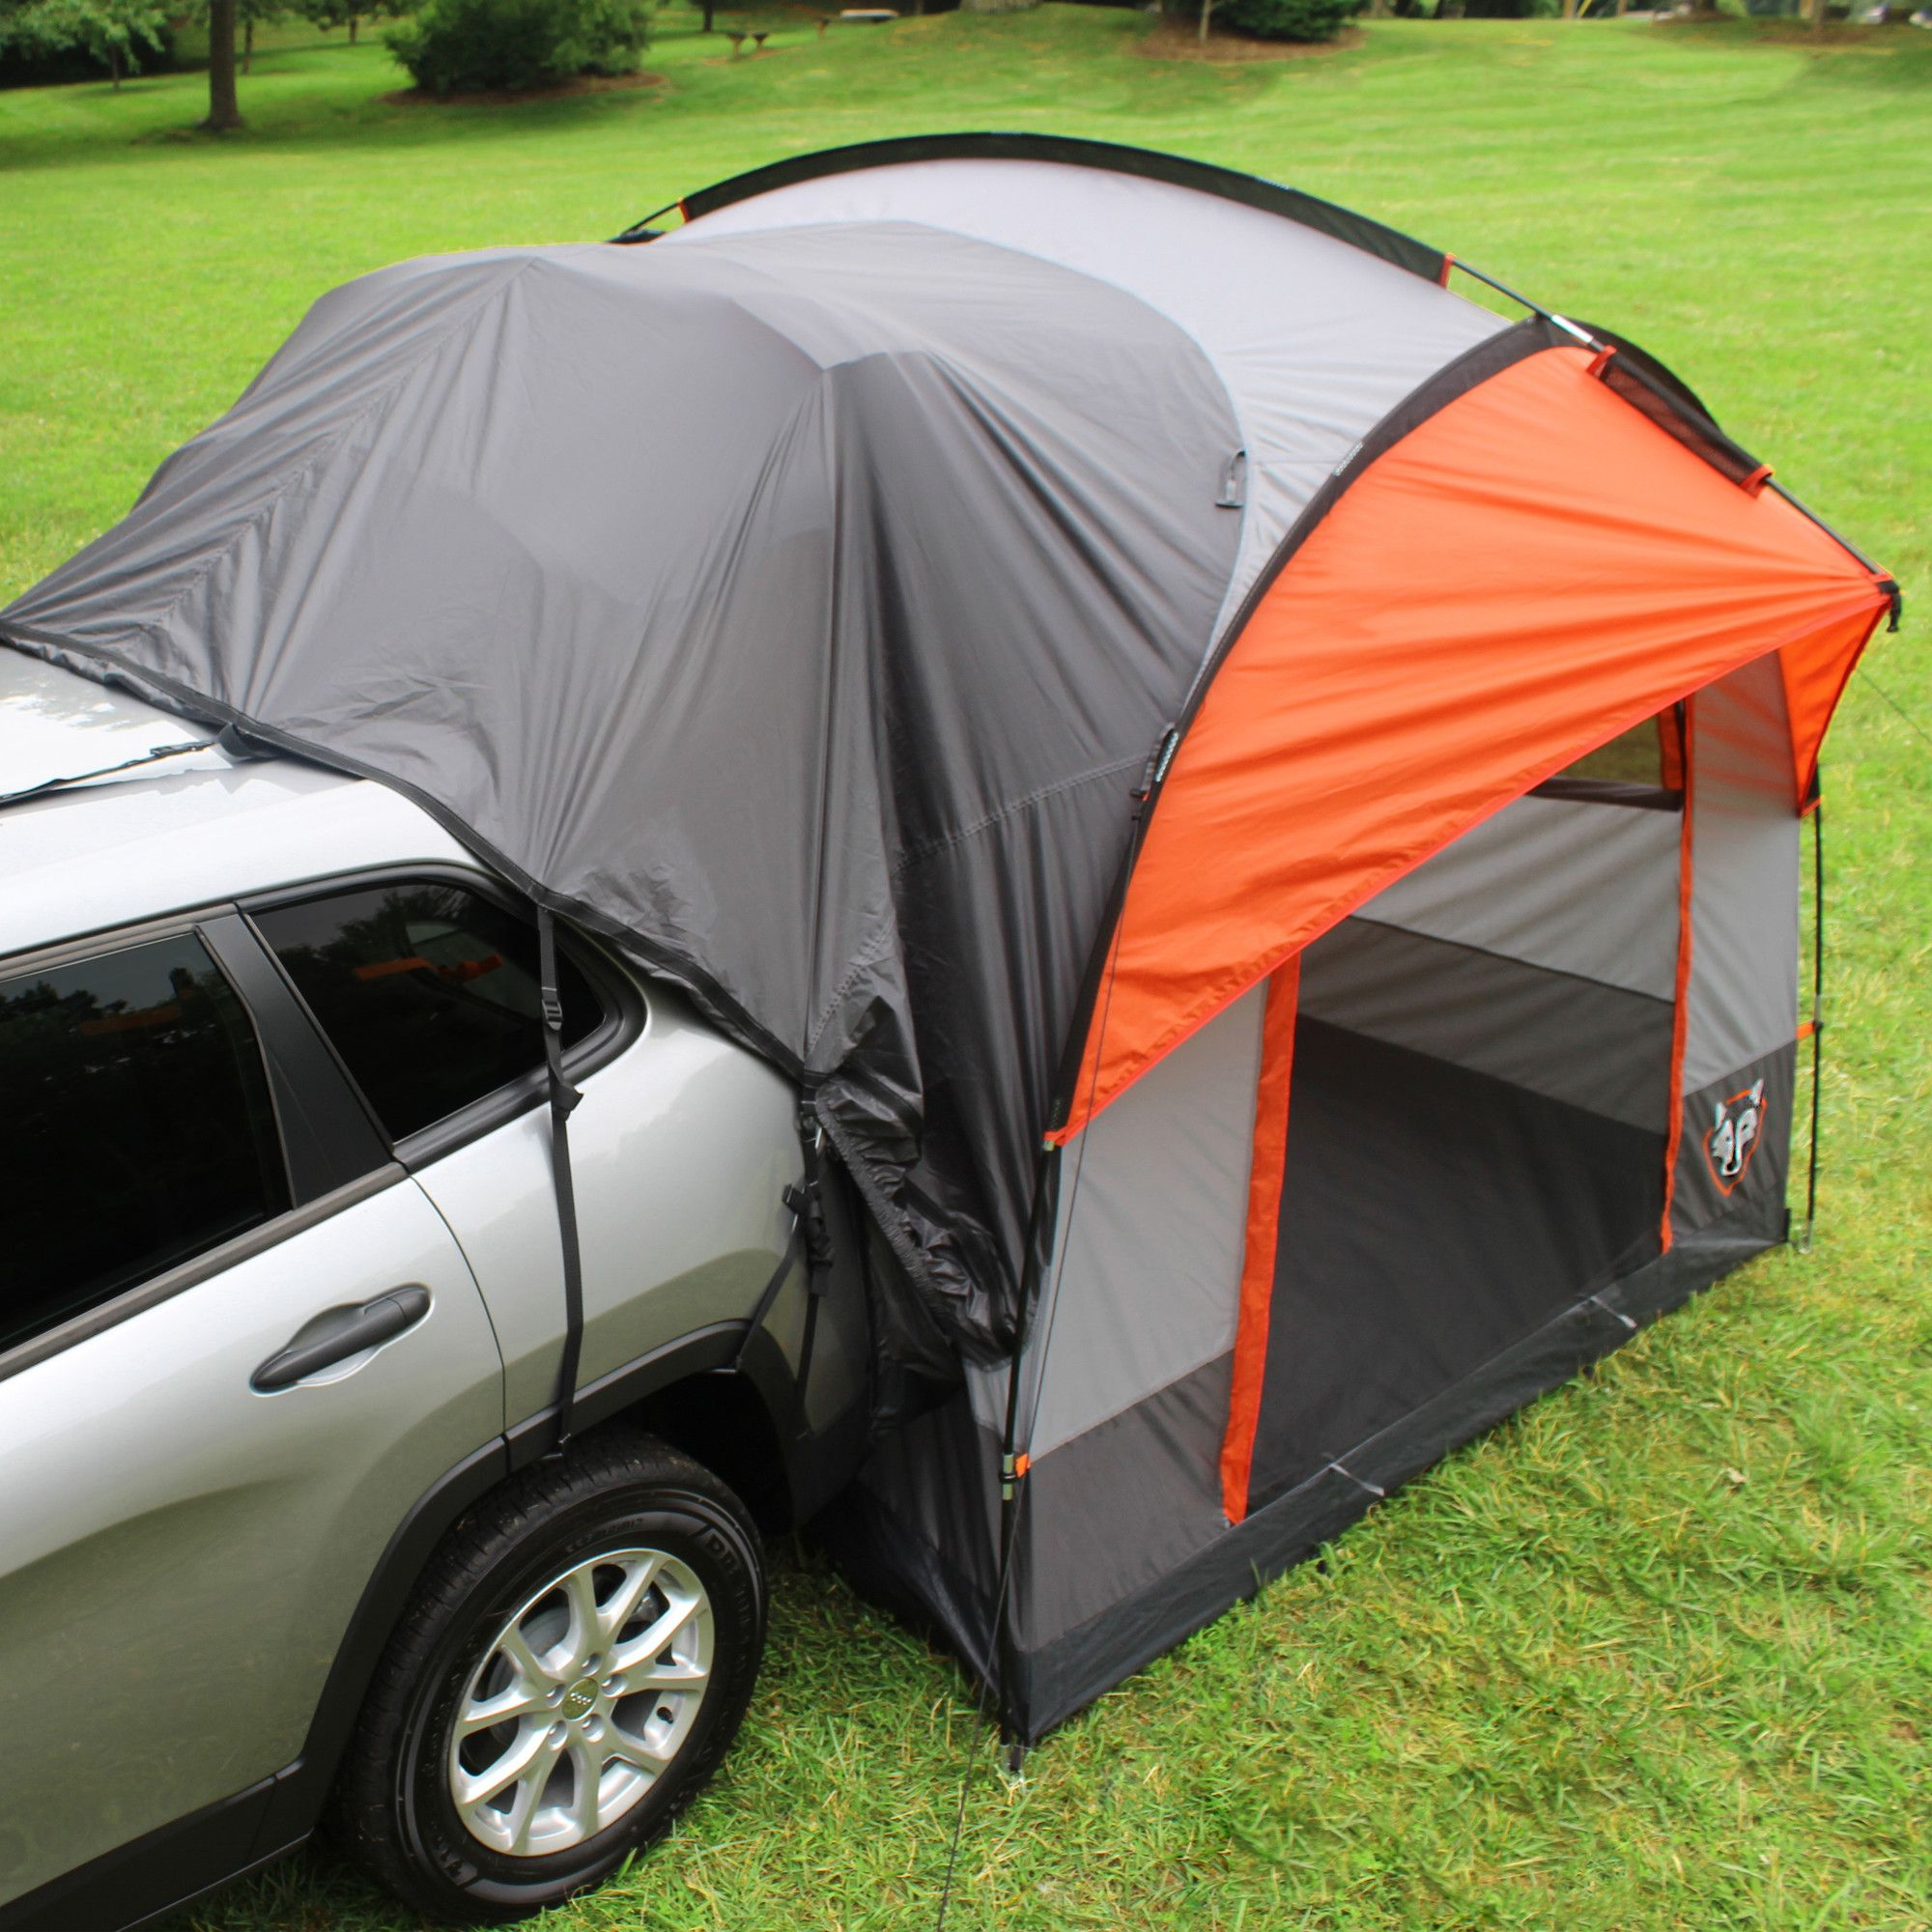 4 Camping Suv 4 Person Tent Fly Fishing Suv Tent Camping Suv Camping